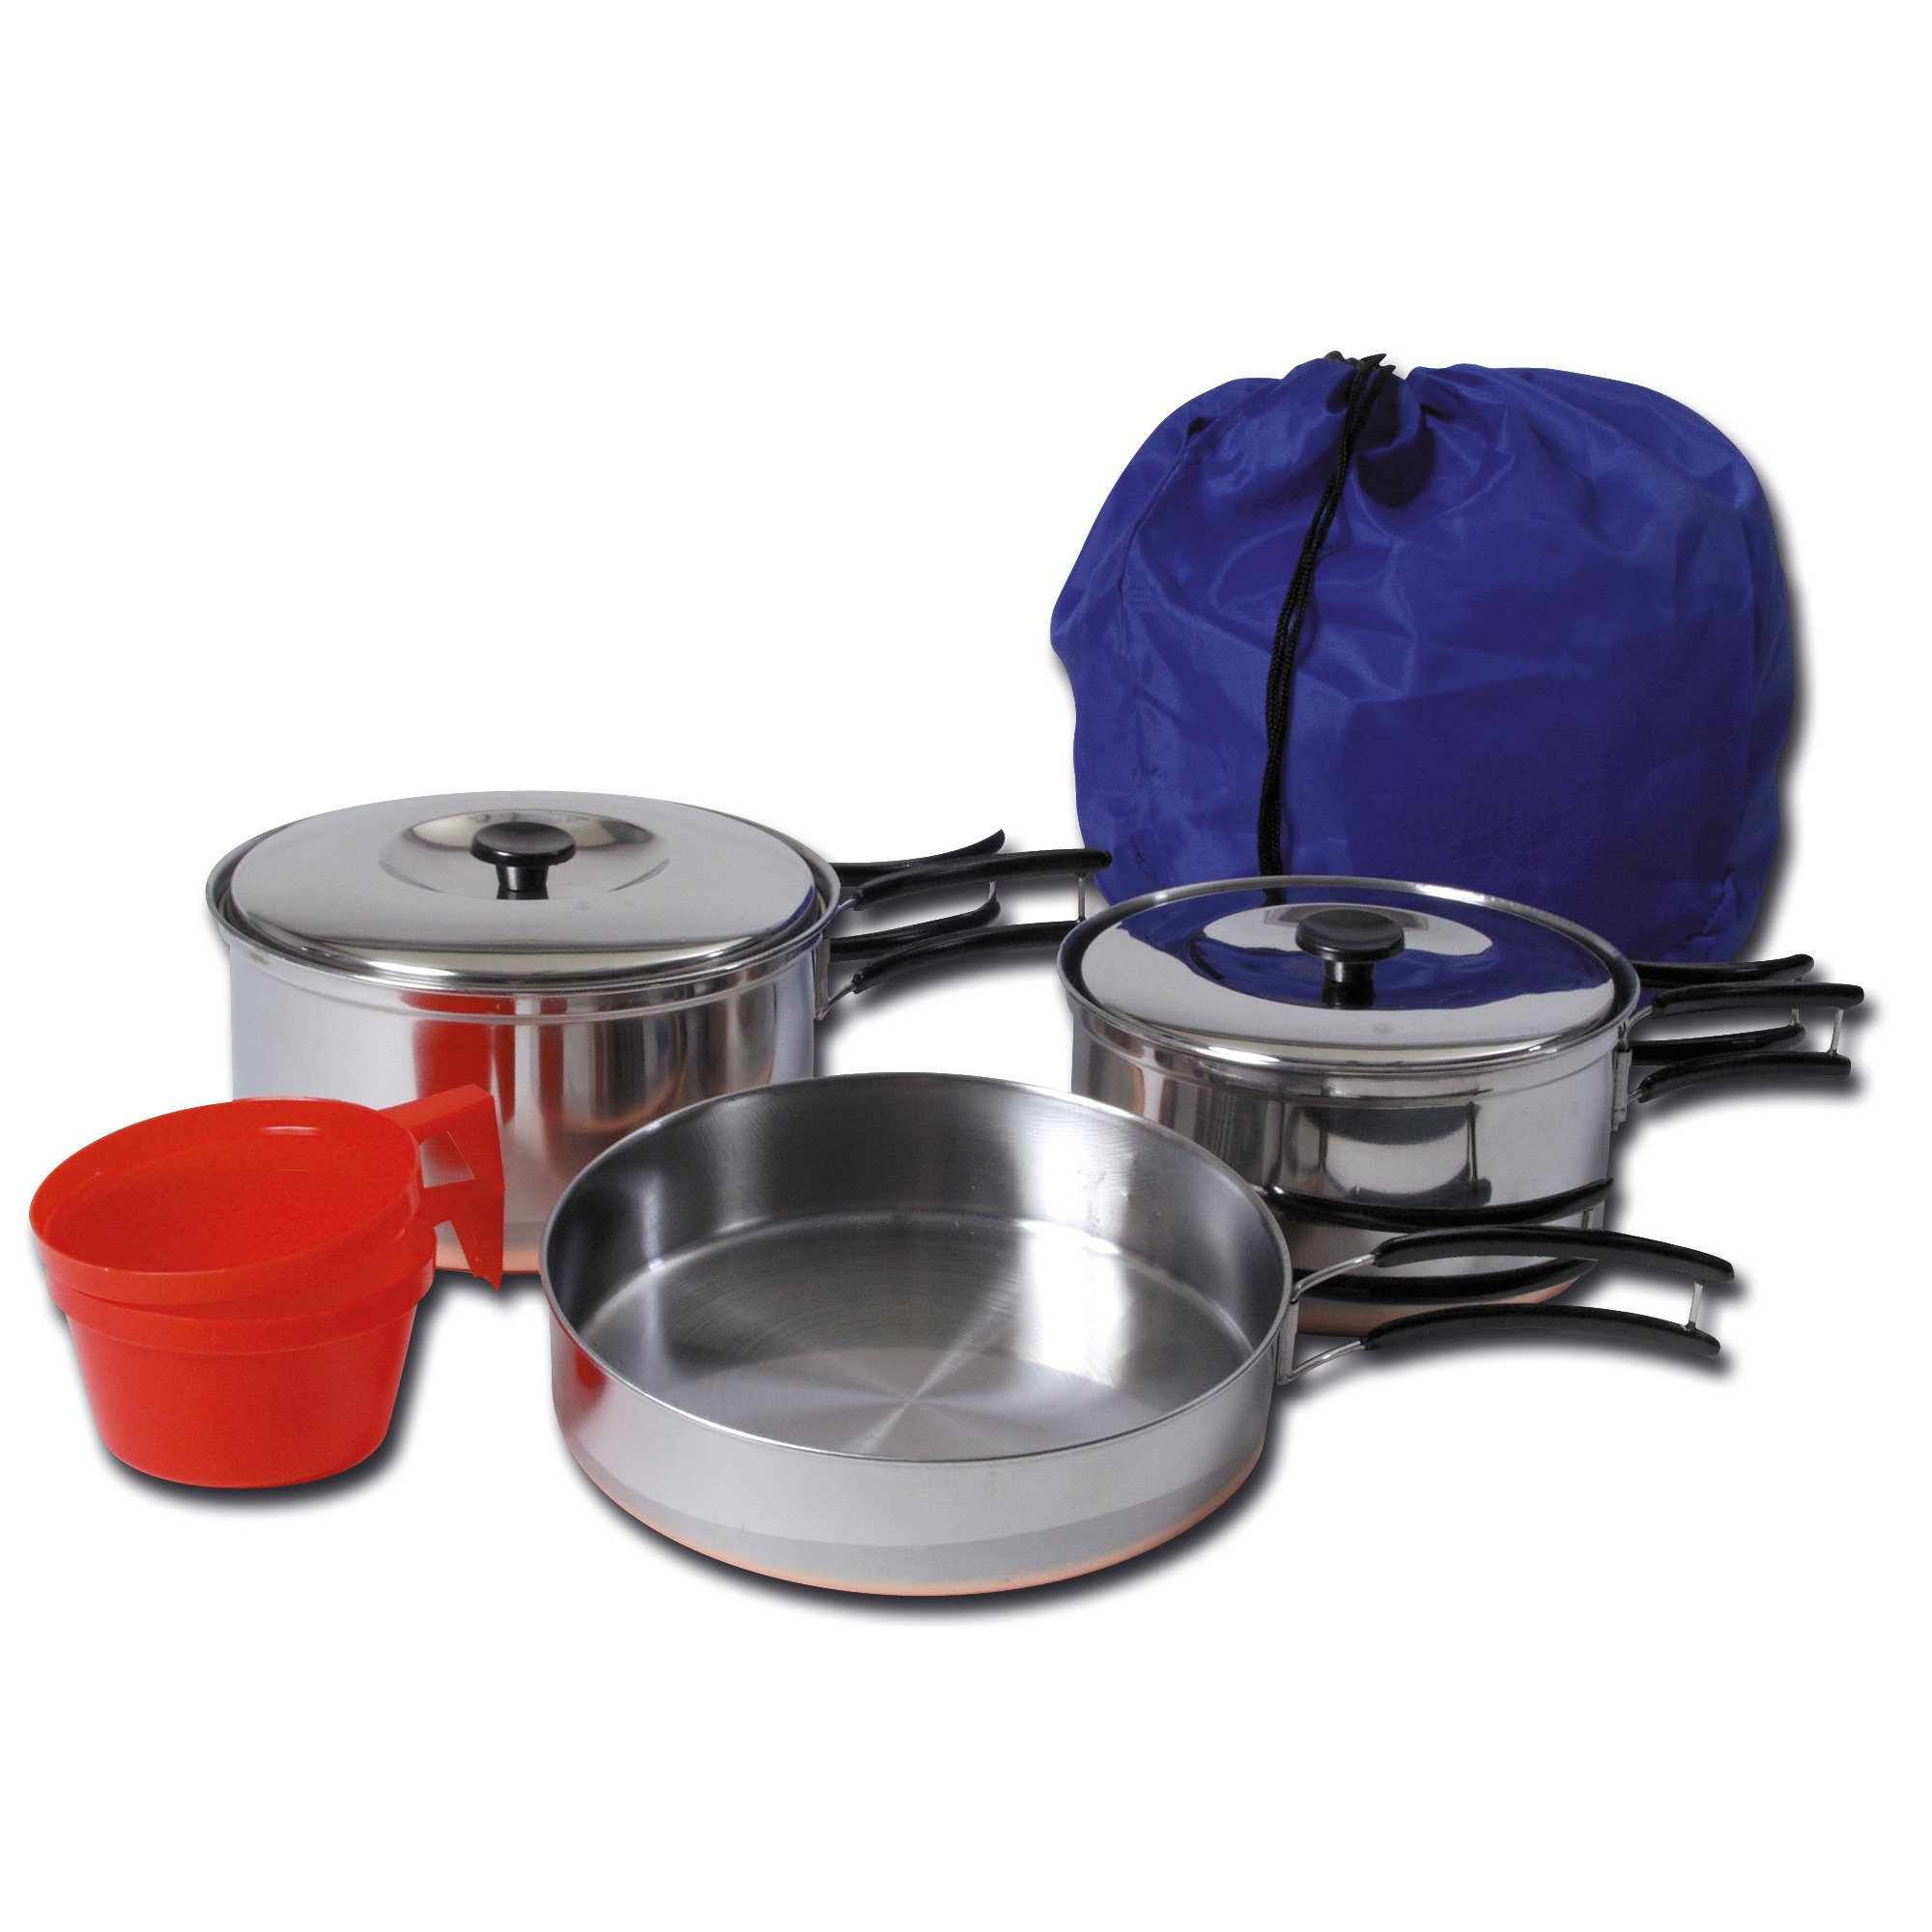 Cookset for 2, stainless steel